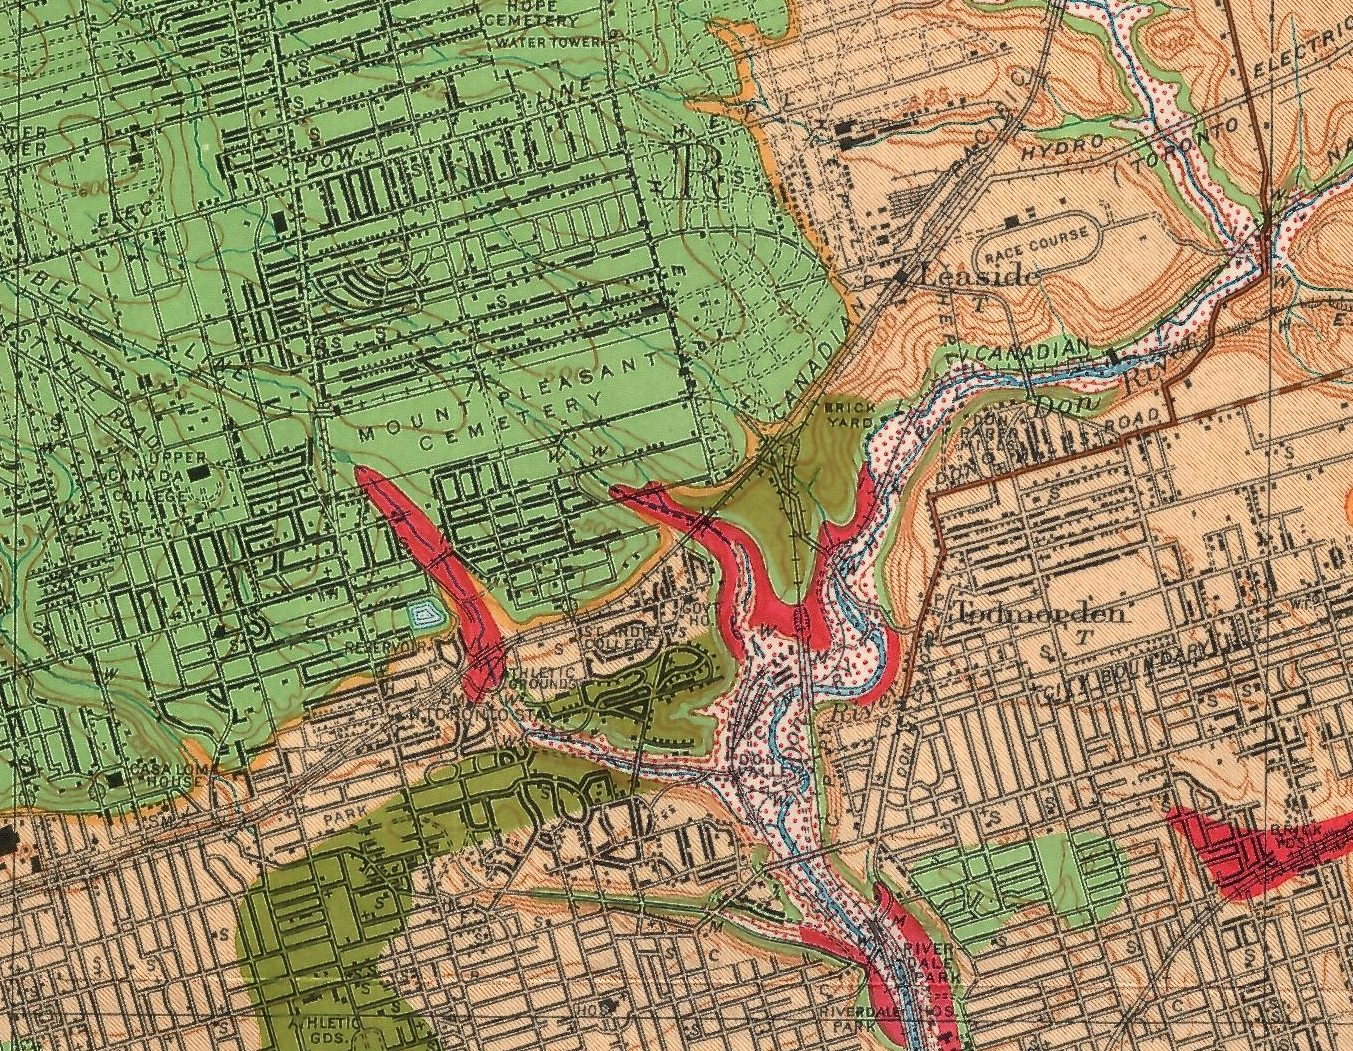 Detail from a 1932 Ontario Department of Mines Annual Report map (41G) by A.P. Coleman. Image courtesy of the University of Toronto map library.